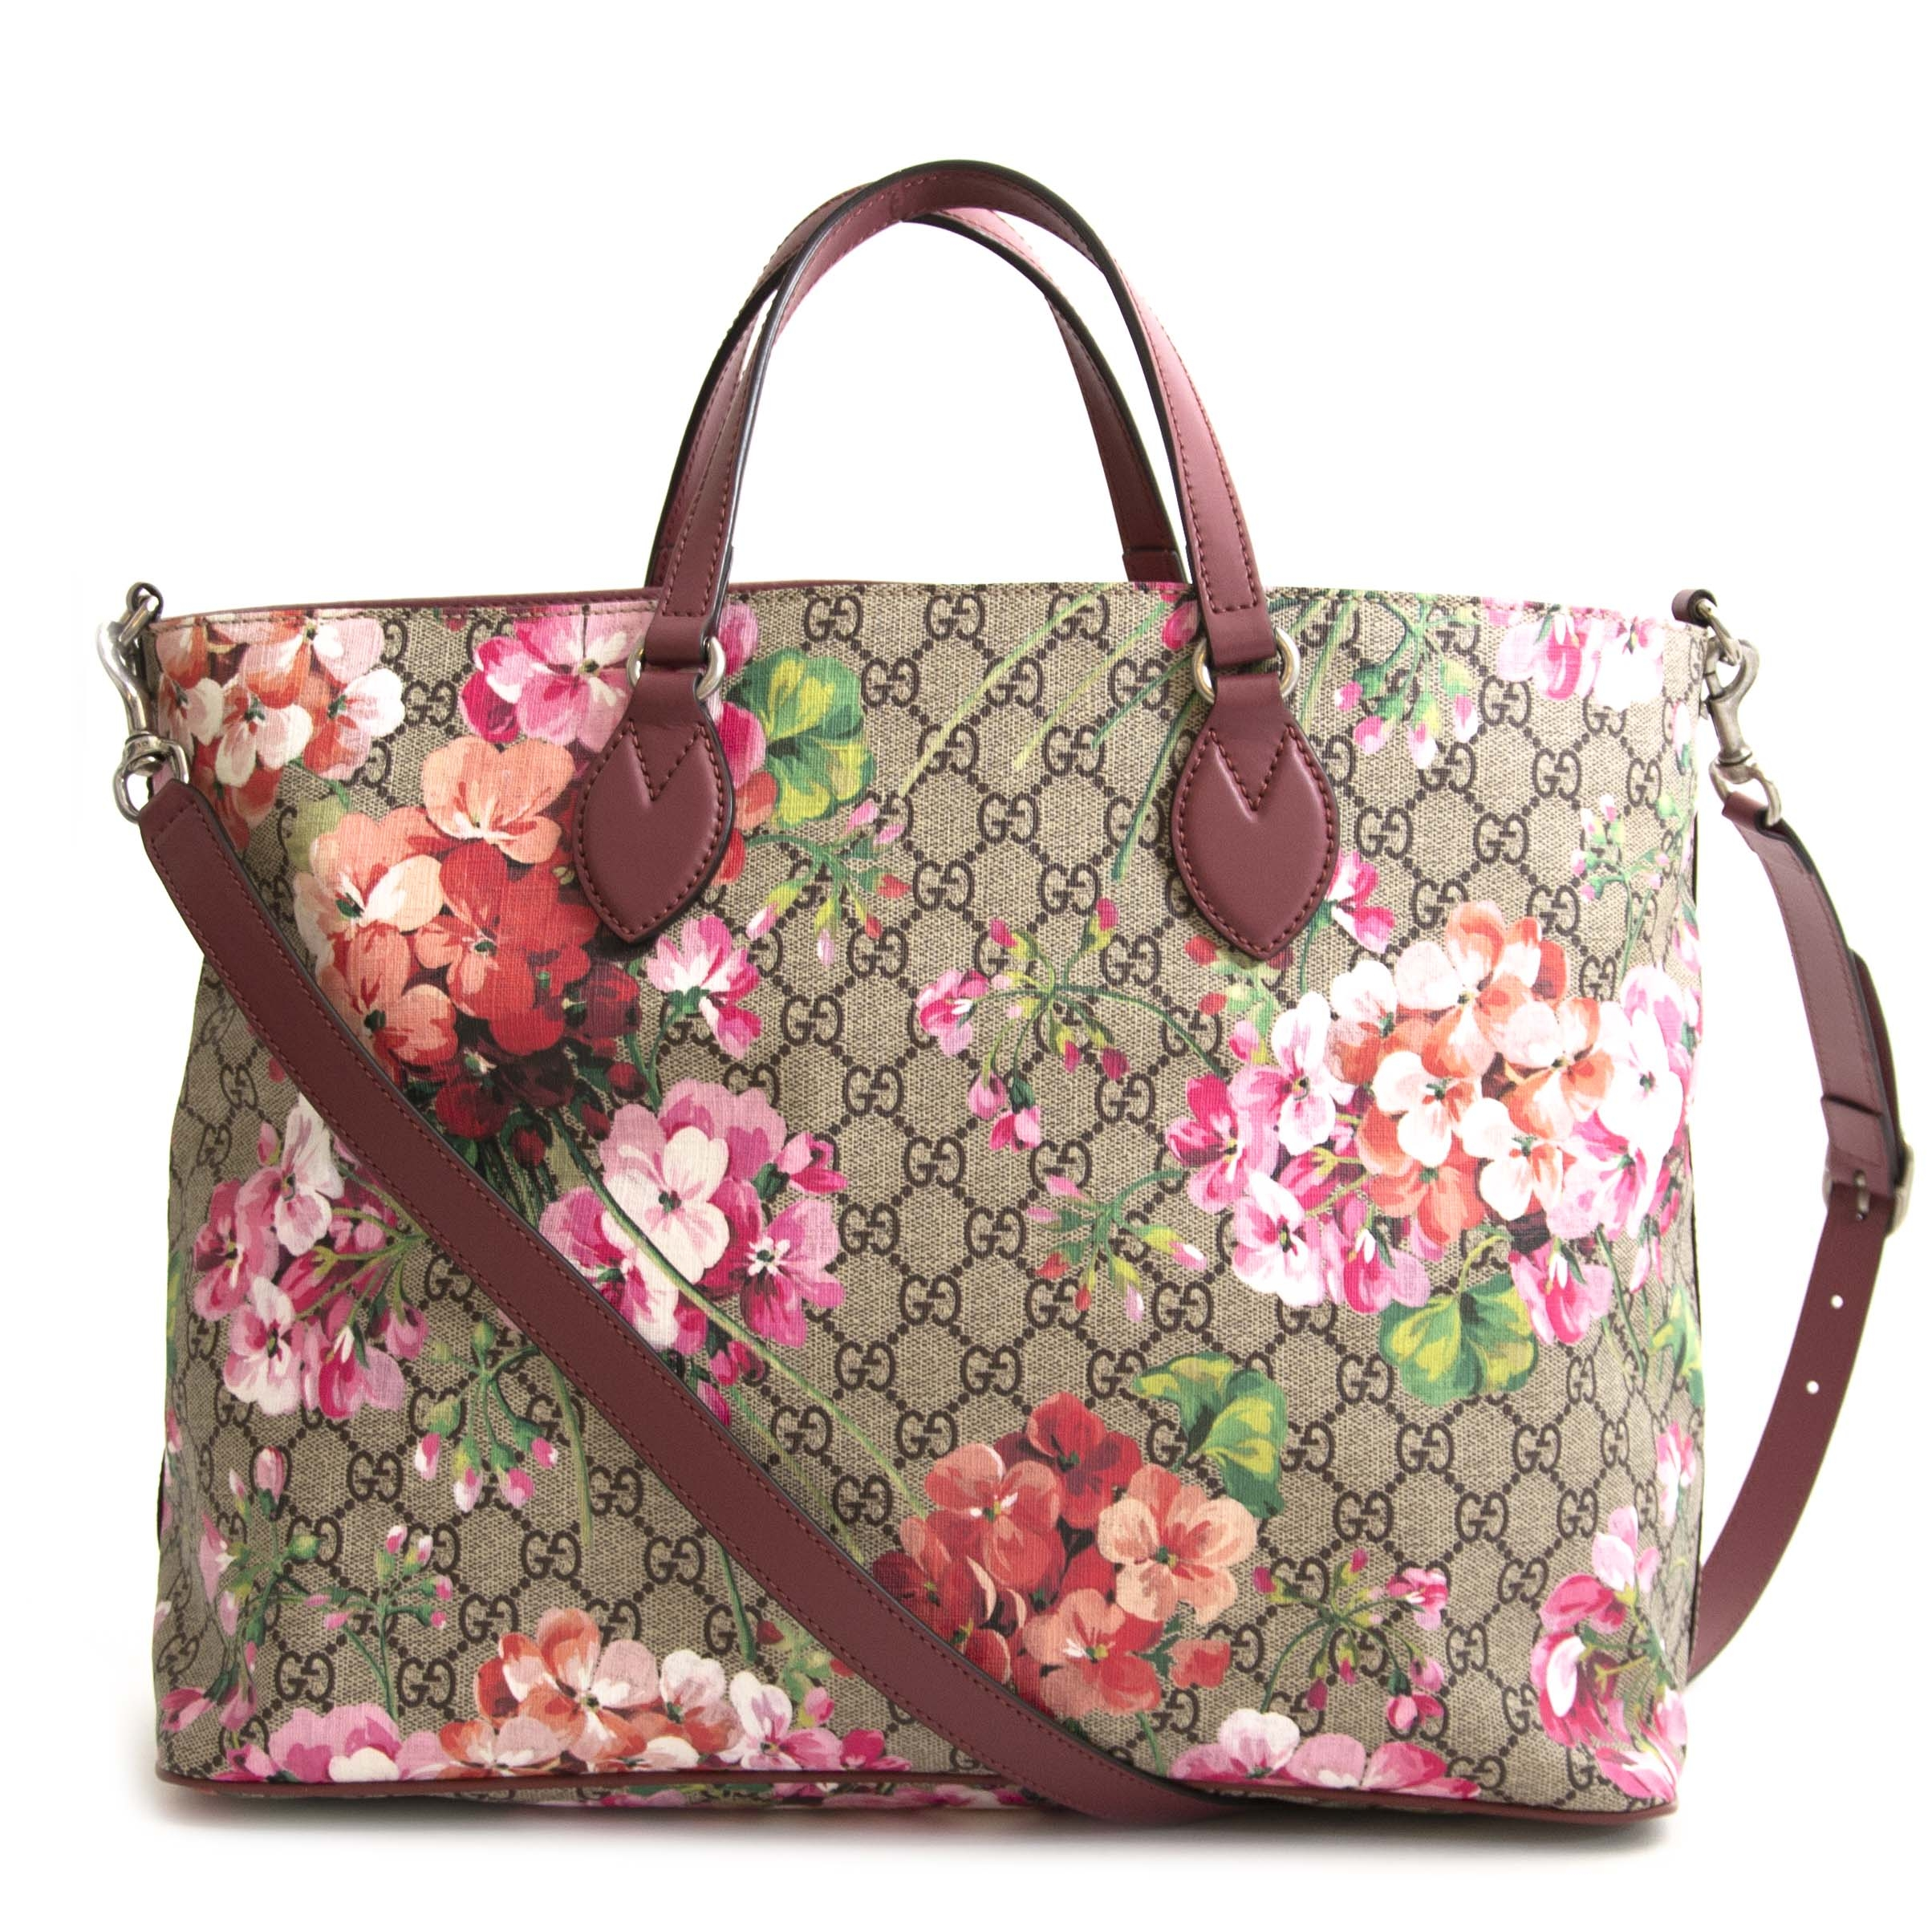 Authentic second hand vintage Gucci Monogram Blooms Tote online shopping webshop LabelLOV